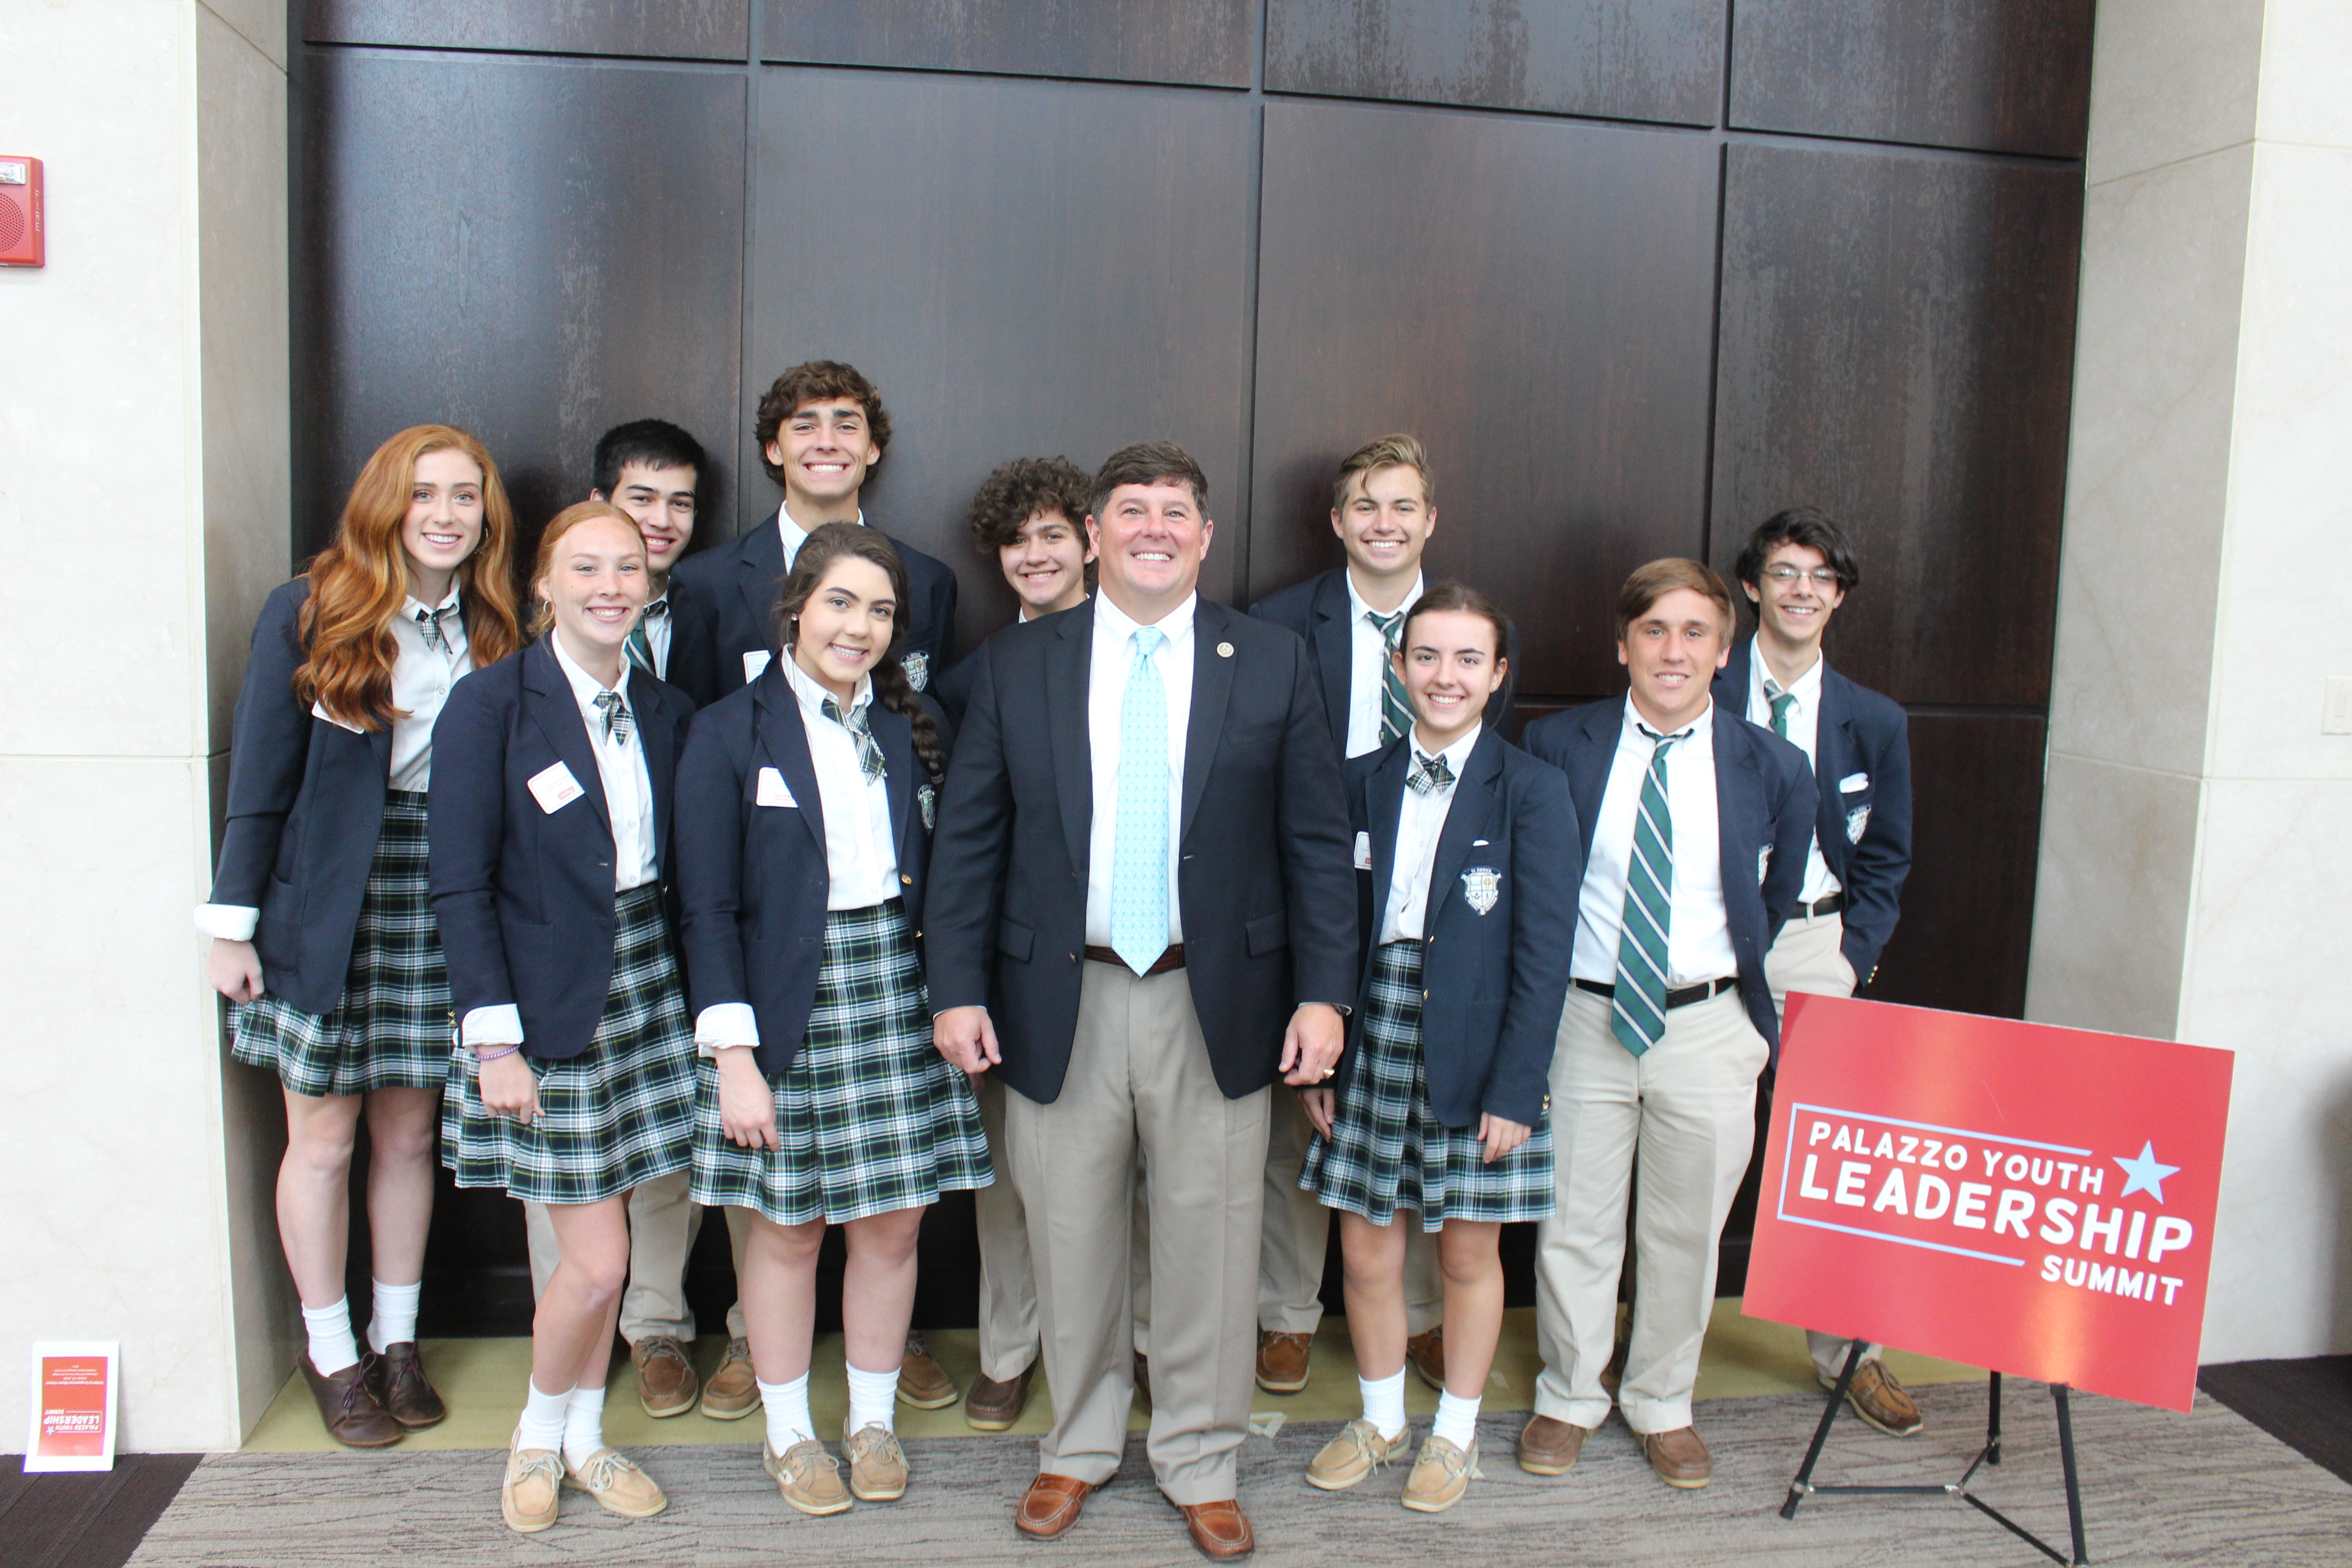 St. Patrick students attend Palazzo Youth Leadership Summit